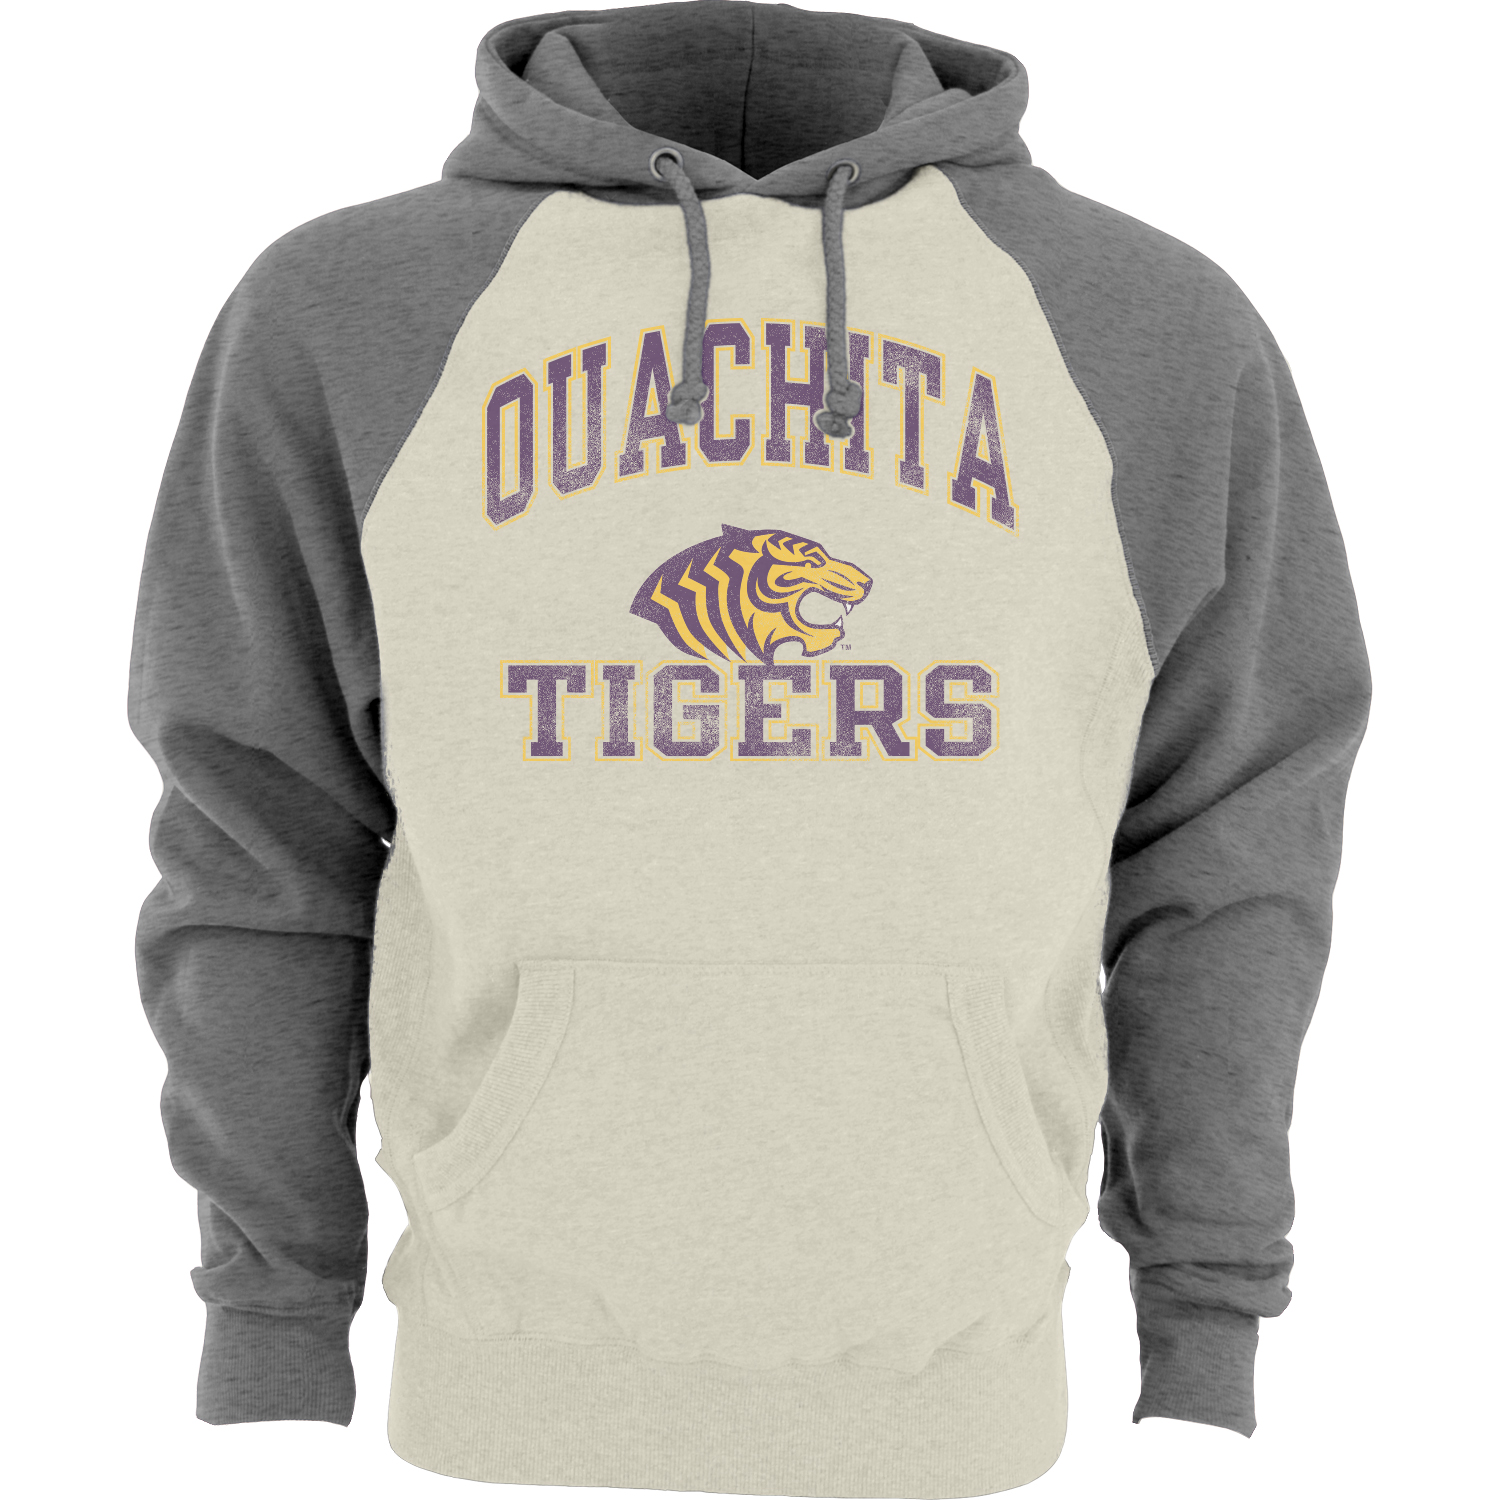 OUACHITA TIGERS CONTRAST SLEEVE HOODY